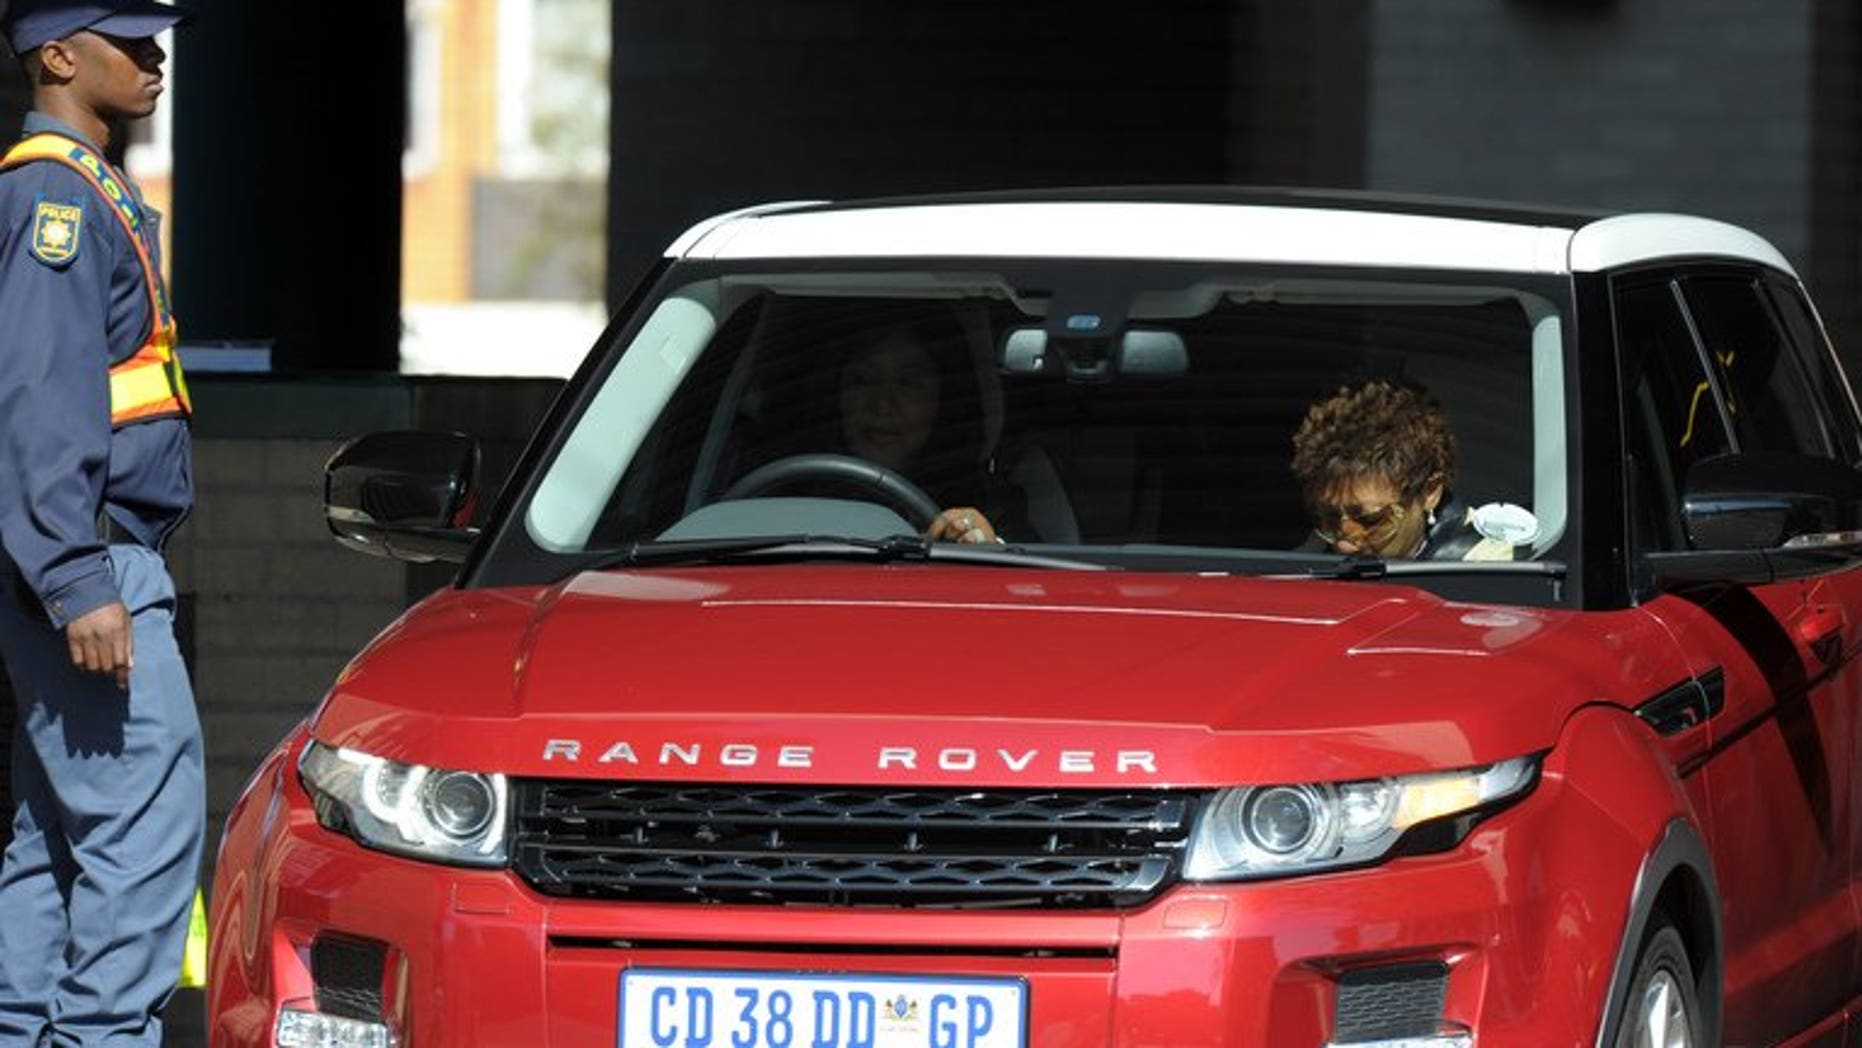 Nelson Mandela's daughters Makaziwe (C) and Zenani Mandela-Dlamini (R) arrive at the Medi Clinic Heart Hospital in Pretoria on June 16, 2013. A date for a court battle involving the control of Mandela's companies has been set for July 29, the South African public broadcaster reported on Thursday.